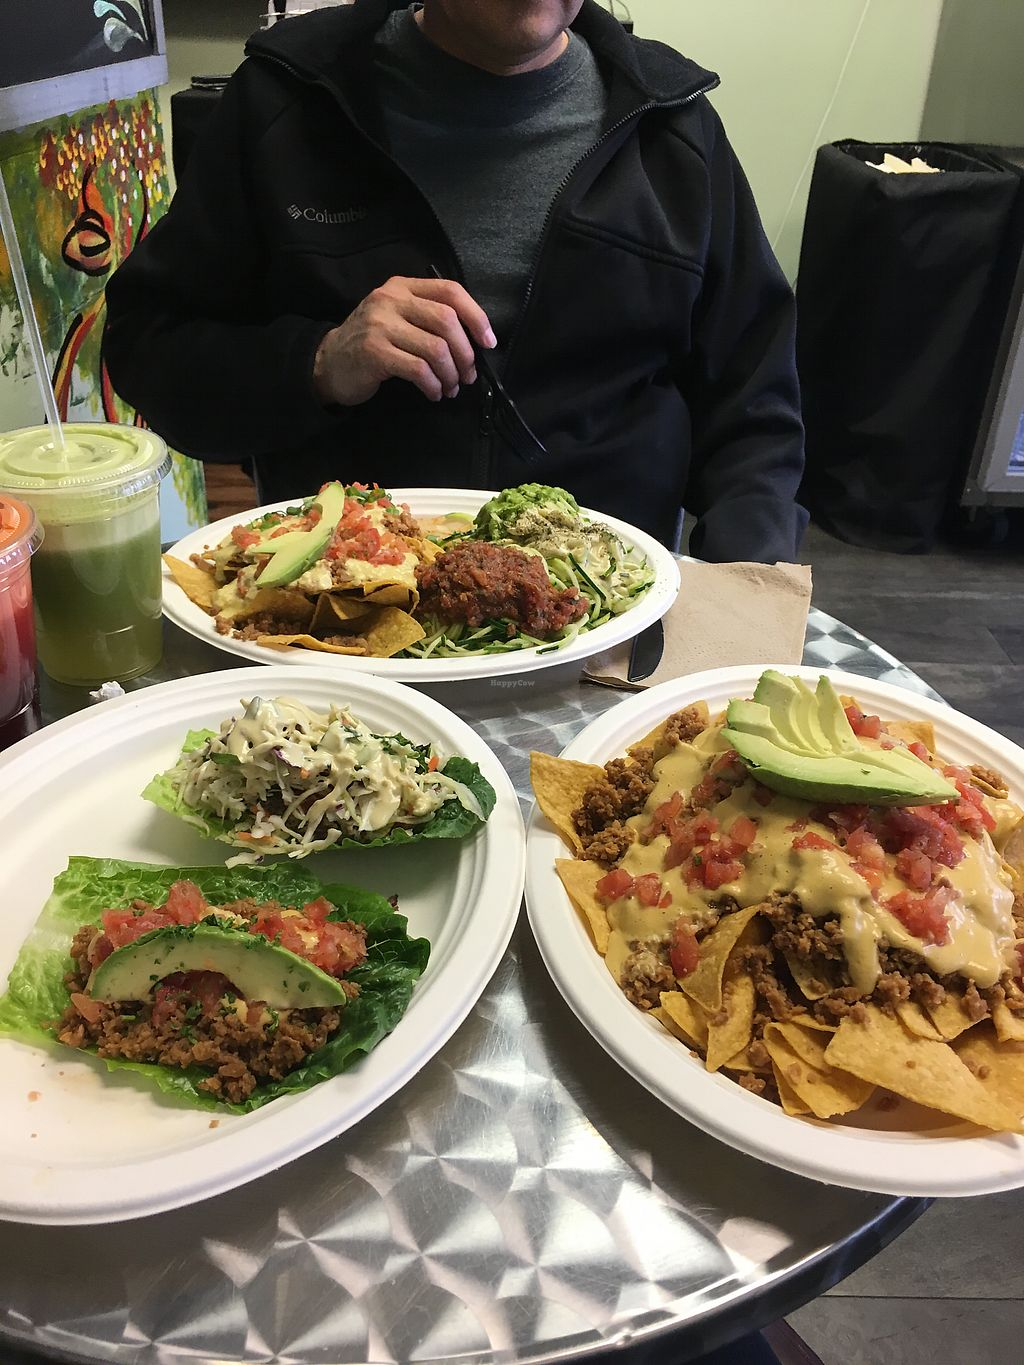 """Photo of Simply Pure  by <a href=""""/members/profile/TheVeganSuperpower"""">TheVeganSuperpower</a> <br/>Sampler plate and nachos <br/> February 27, 2018  - <a href='/contact/abuse/image/44876/364306'>Report</a>"""